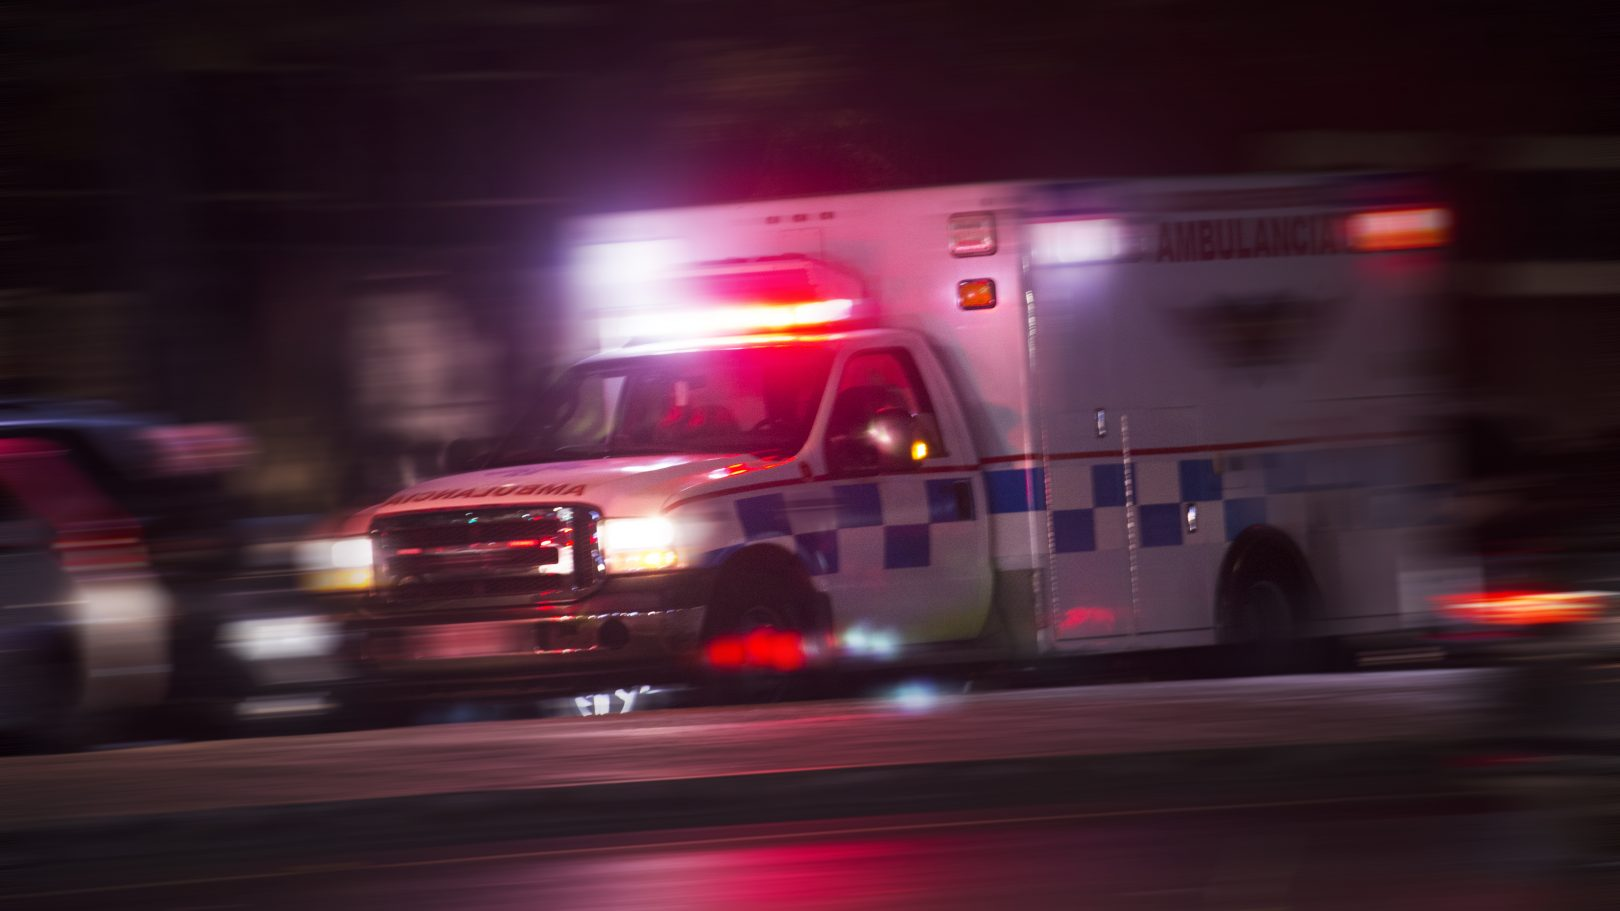 ambulance driving down street with sirens